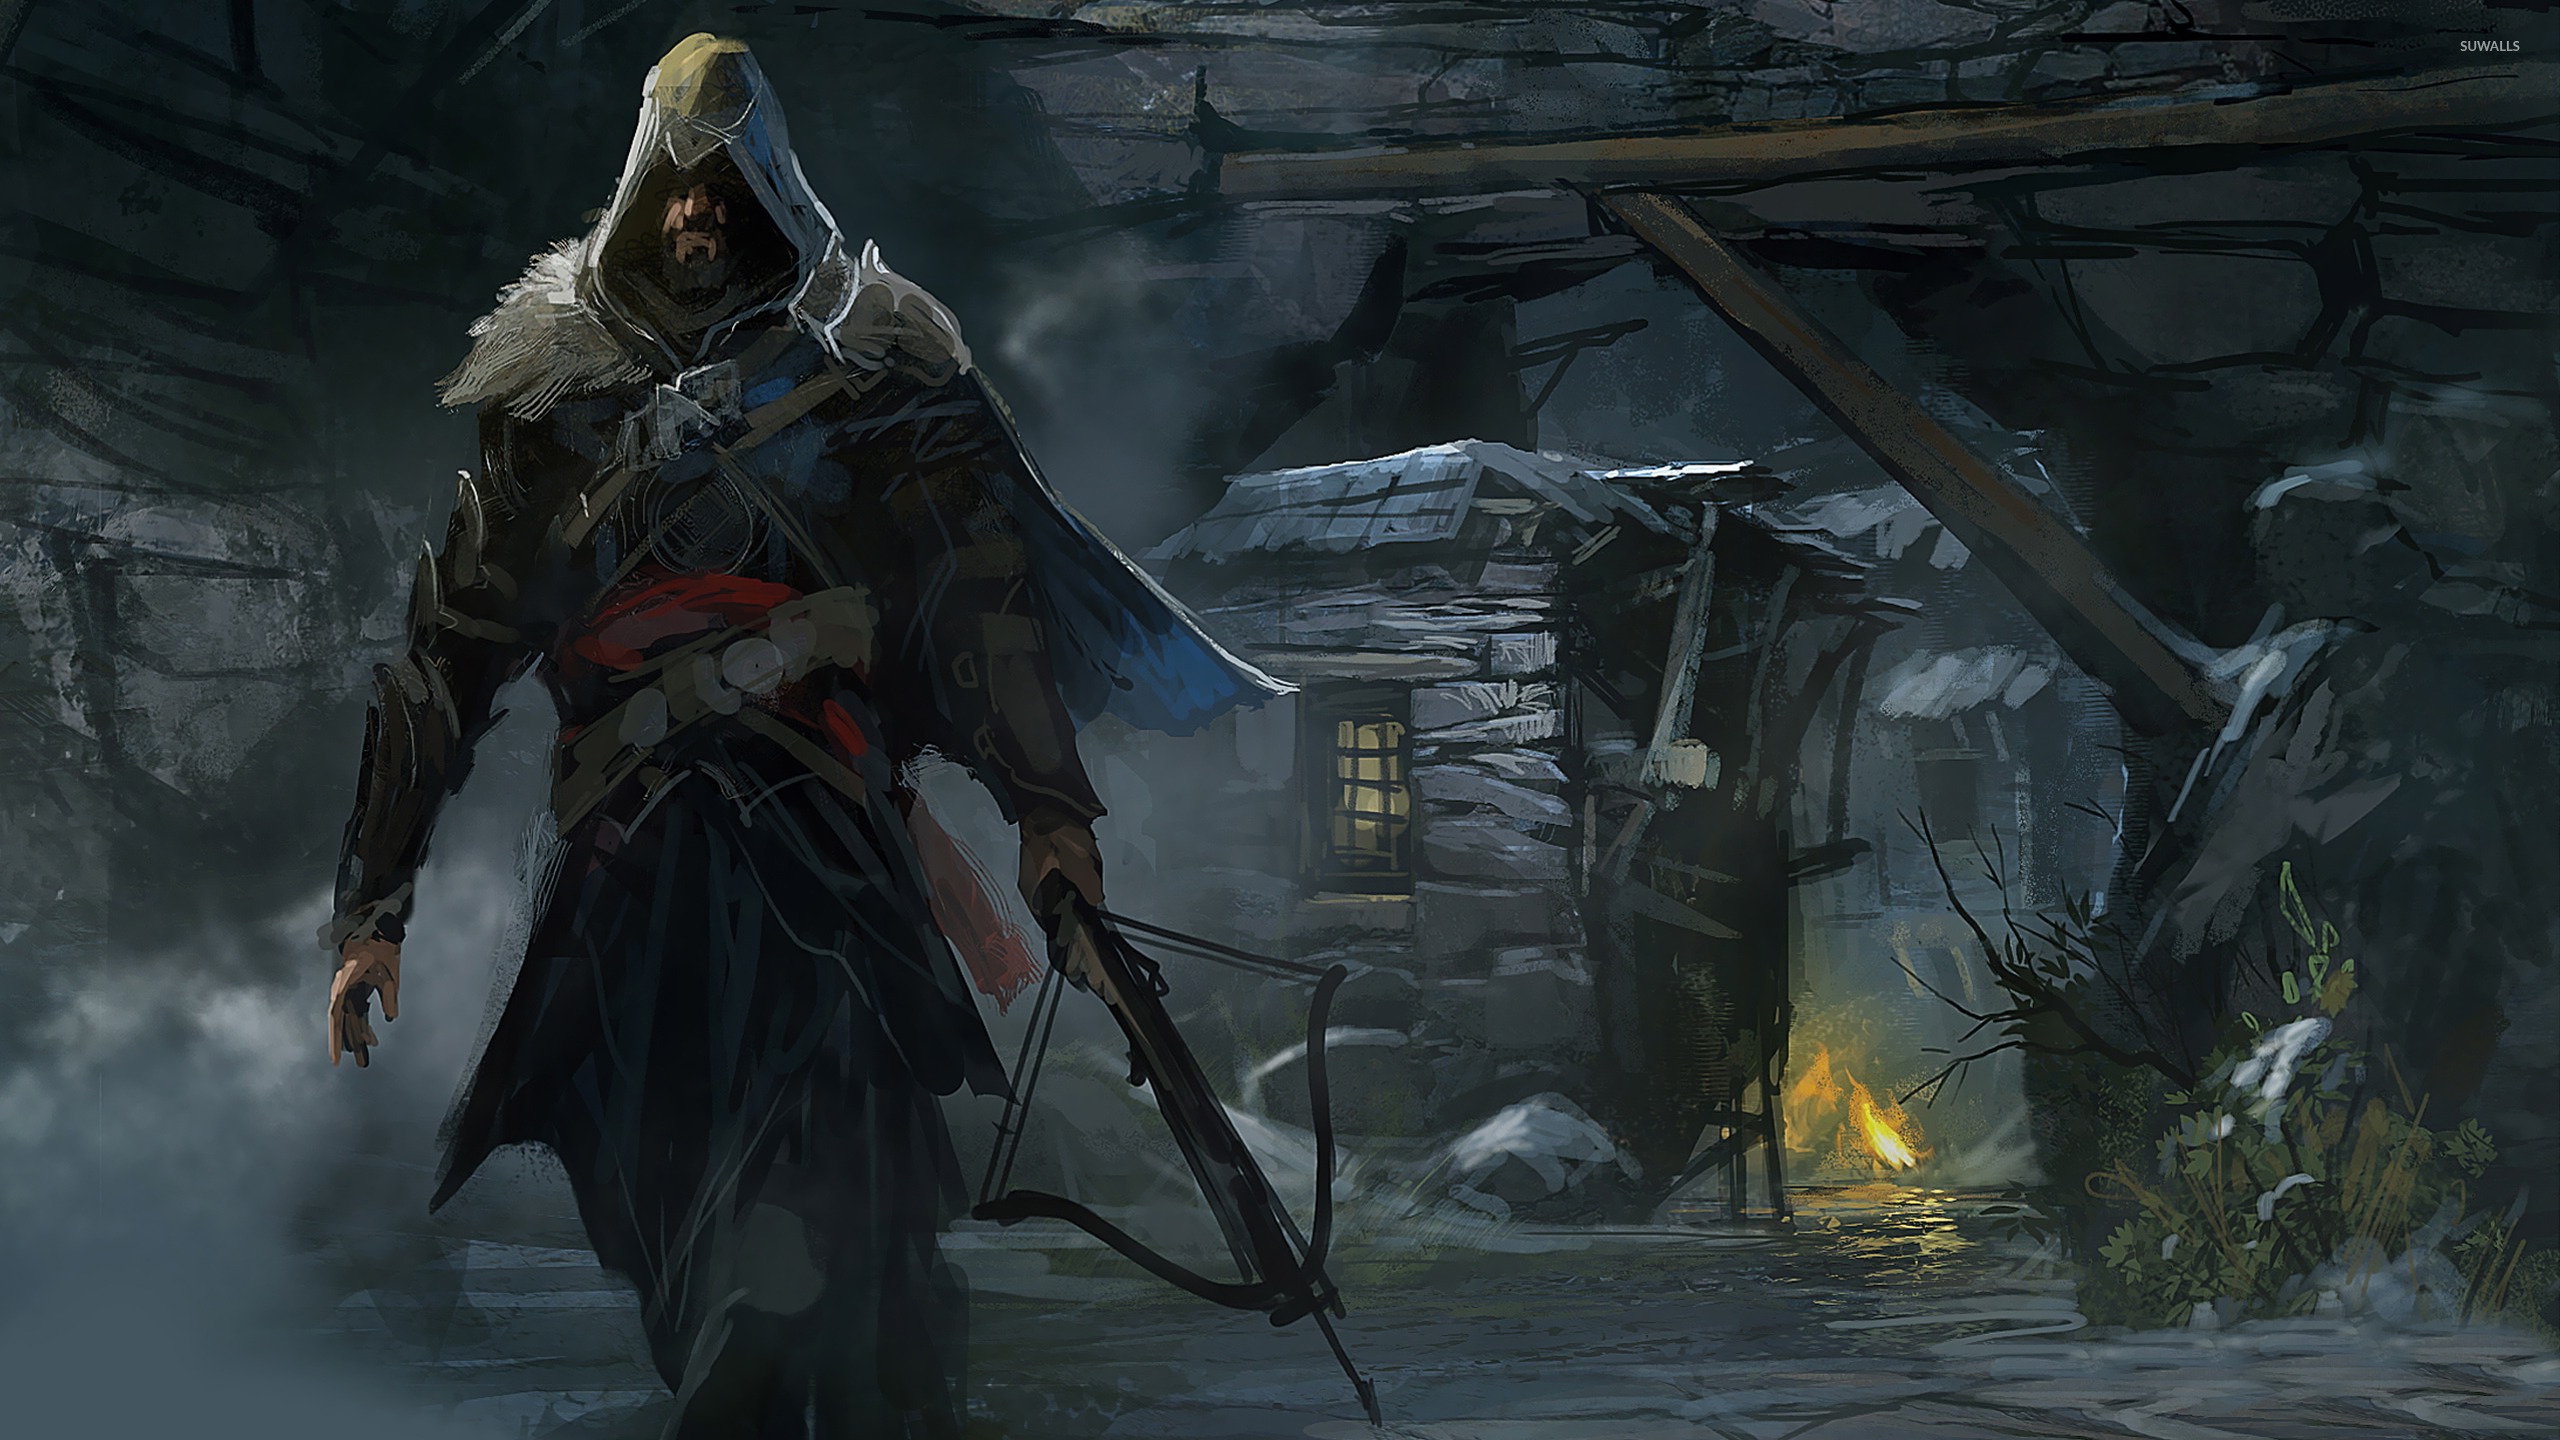 Assassin S Creed Revelations 11 Wallpaper Game Wallpapers